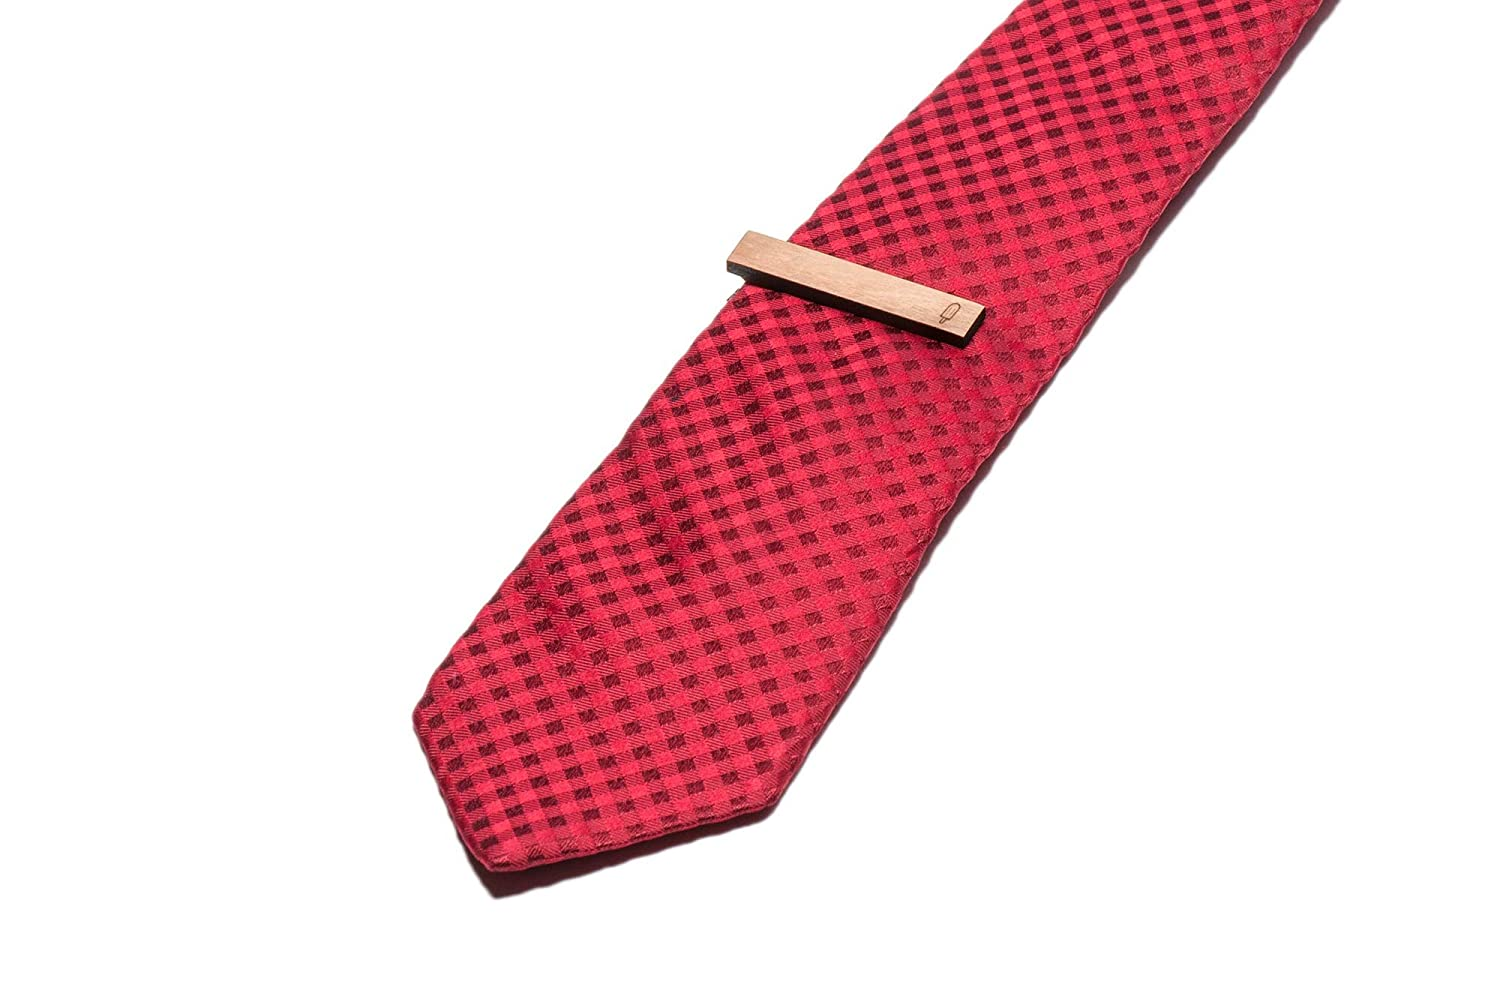 Cherry Wood Tie Bar Engraved in The USA Wooden Accessories Company Wooden Tie Clips with Laser Engraved Ice Pop Design